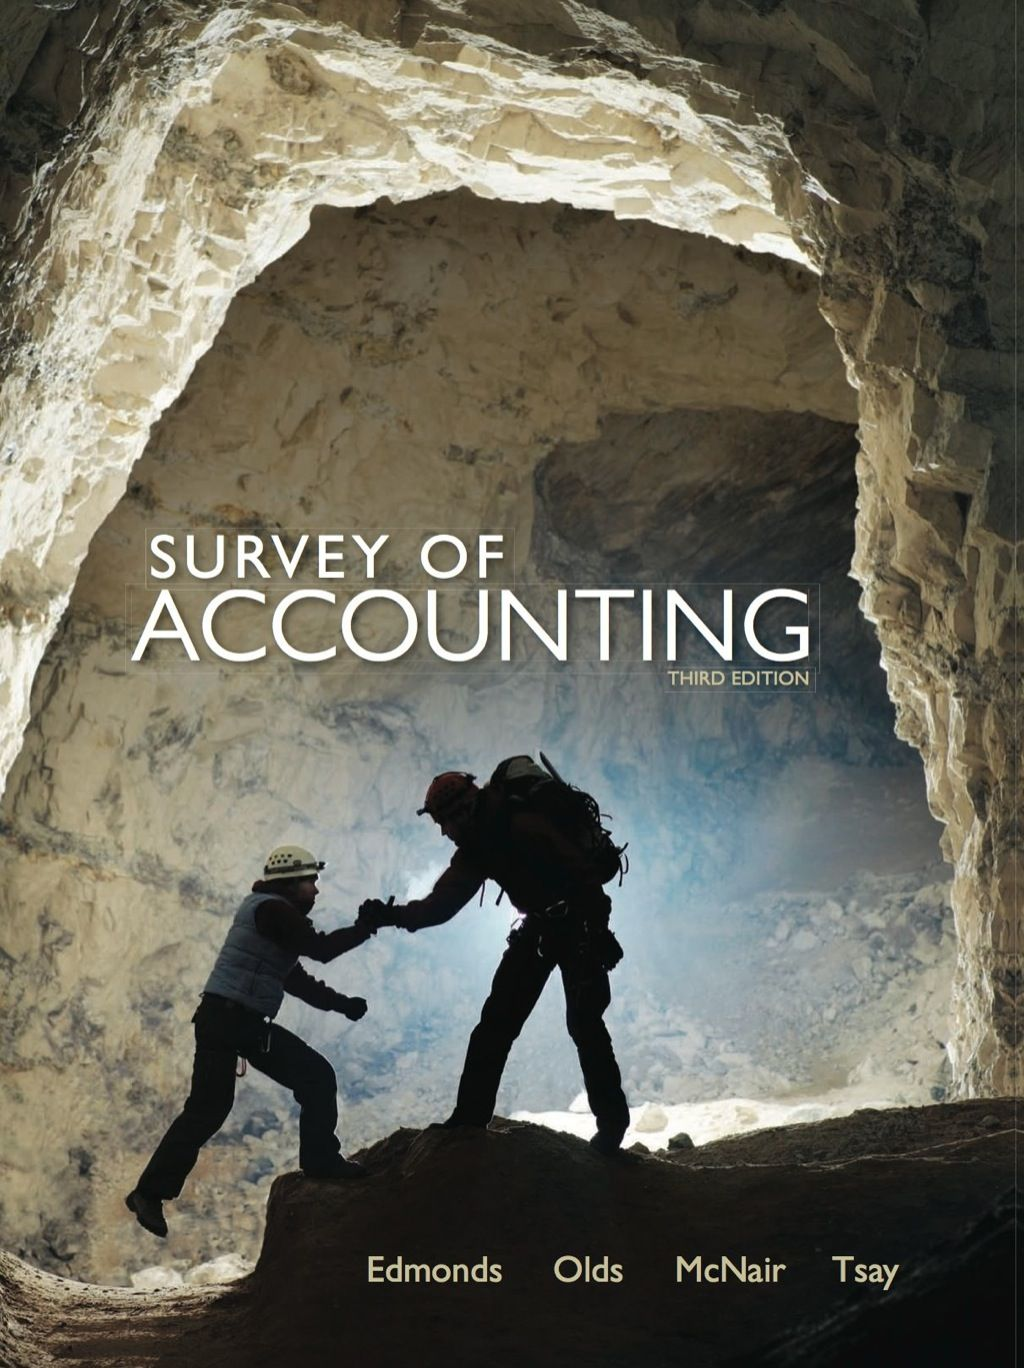 Pin By Axmedcilmi On Accounting Love Accounting Books Accounting Surveys